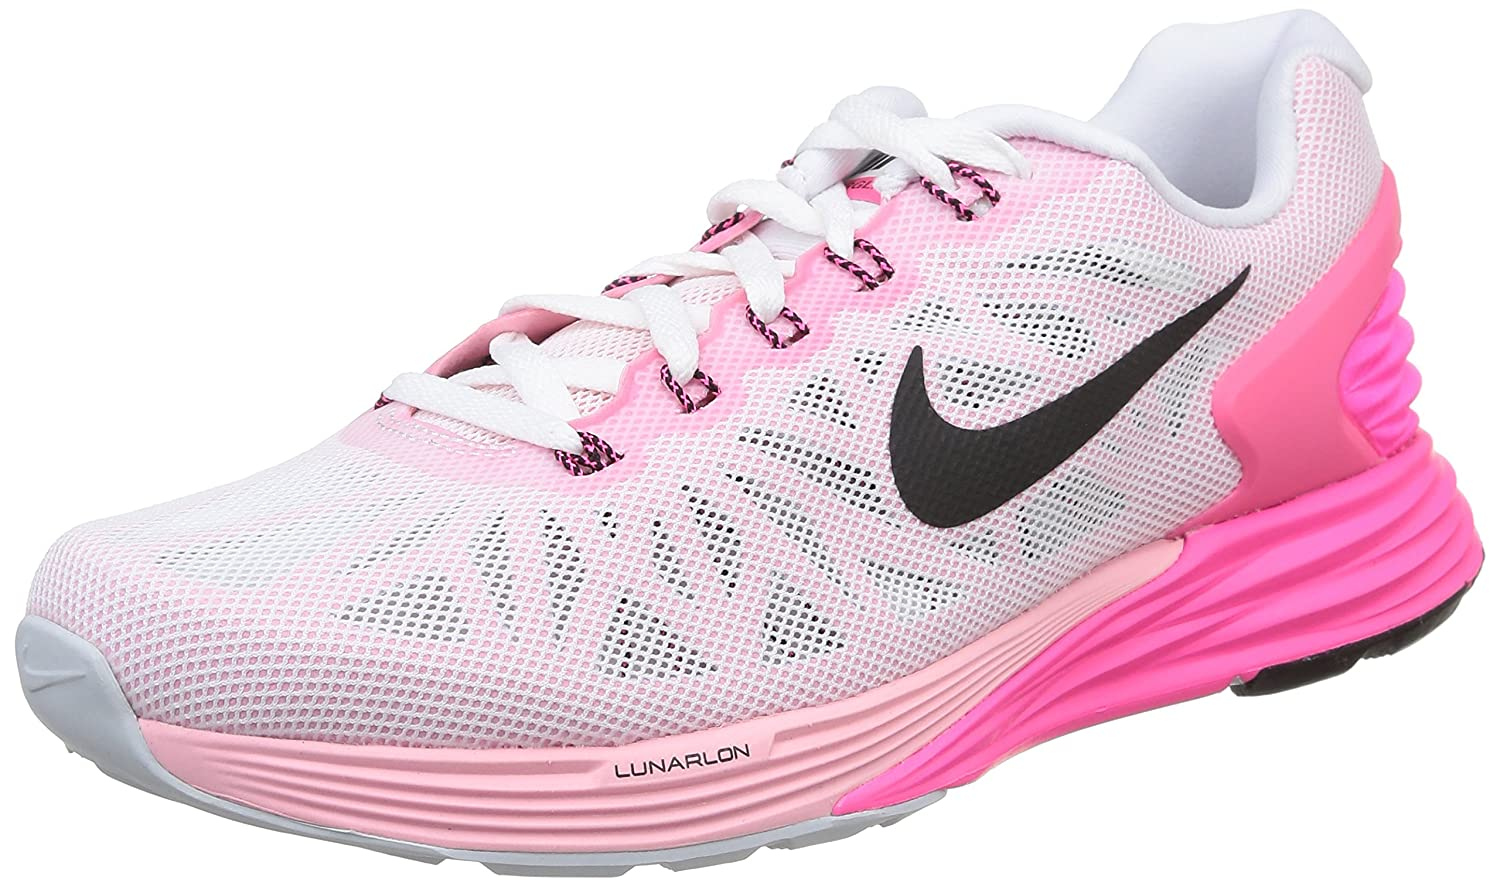 Nike Lunarglide 6, Women's Running Shoes: Amazon.co.uk: Shoes & Bags